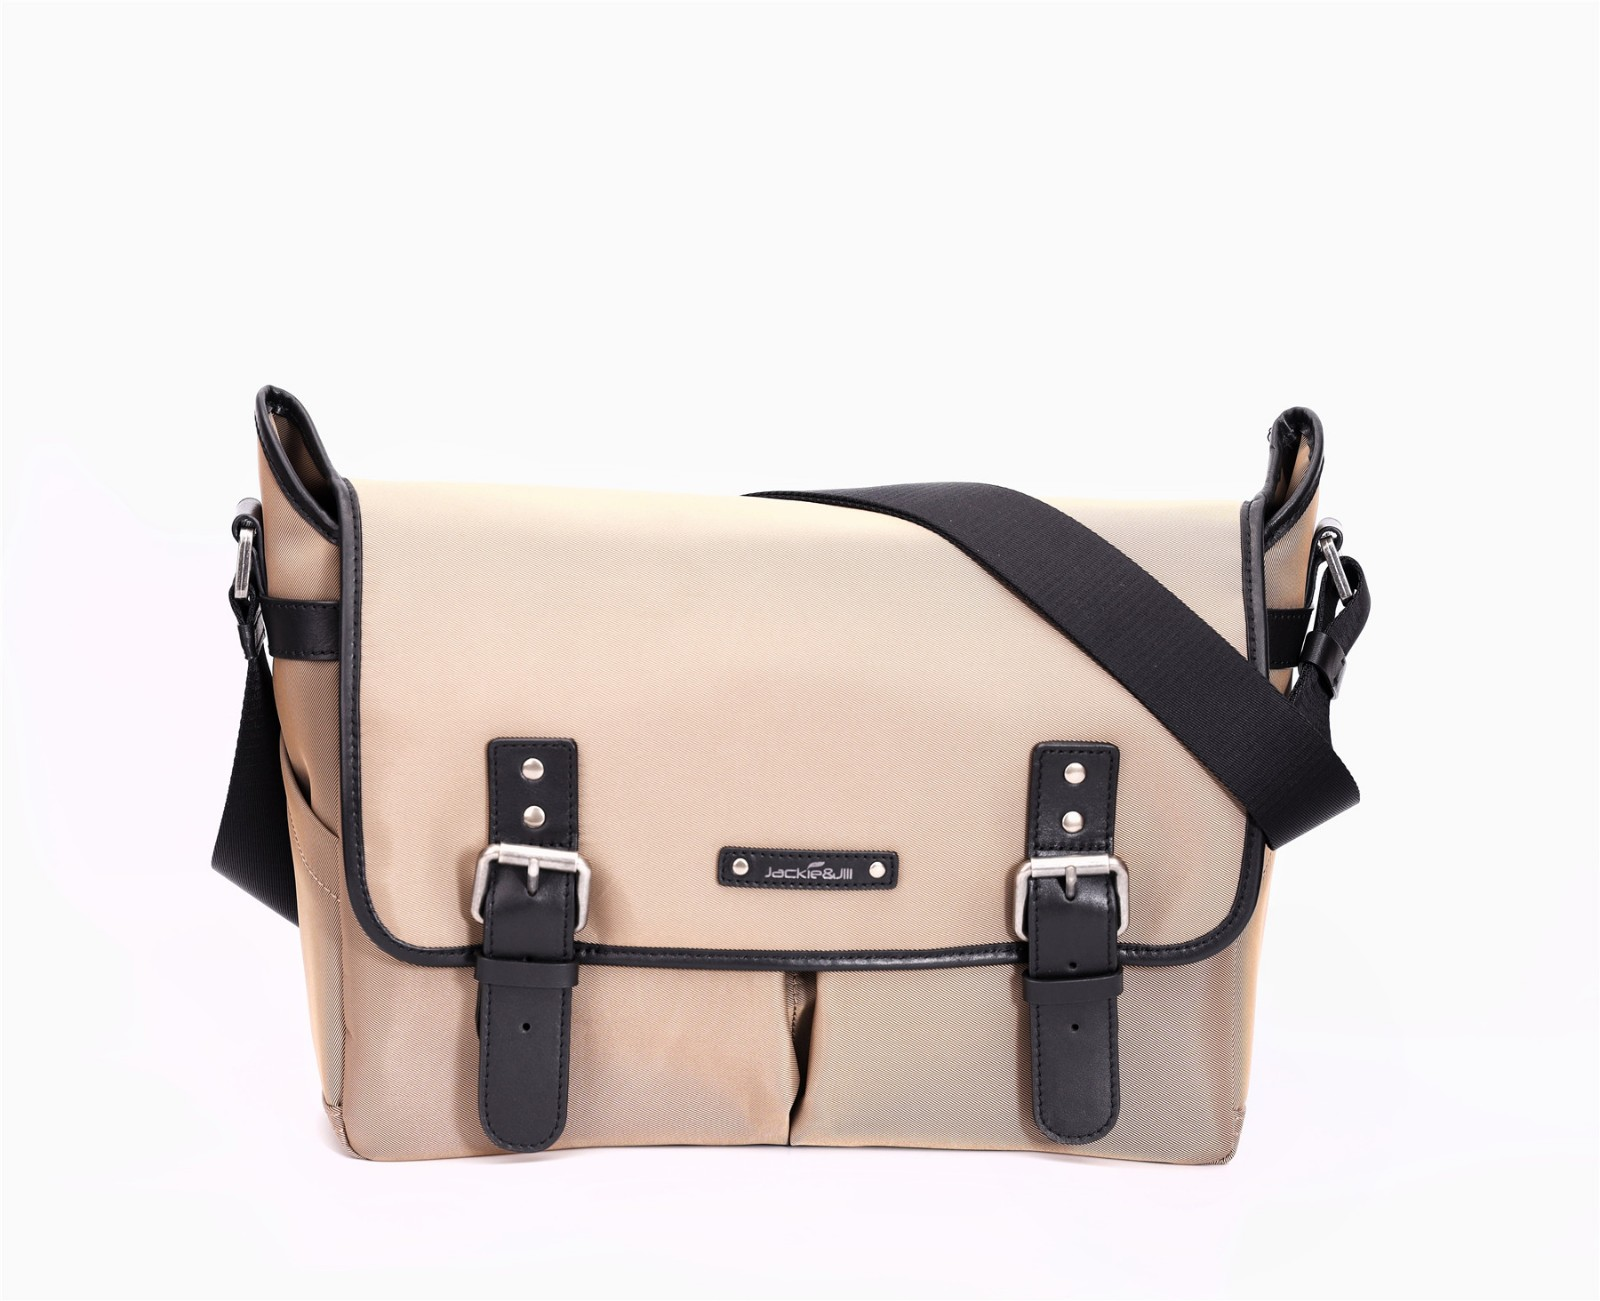 GF bags-Best Leather Messenger Bag Supplier, Mens Fashion Messenger Bag | Gf Bags-1